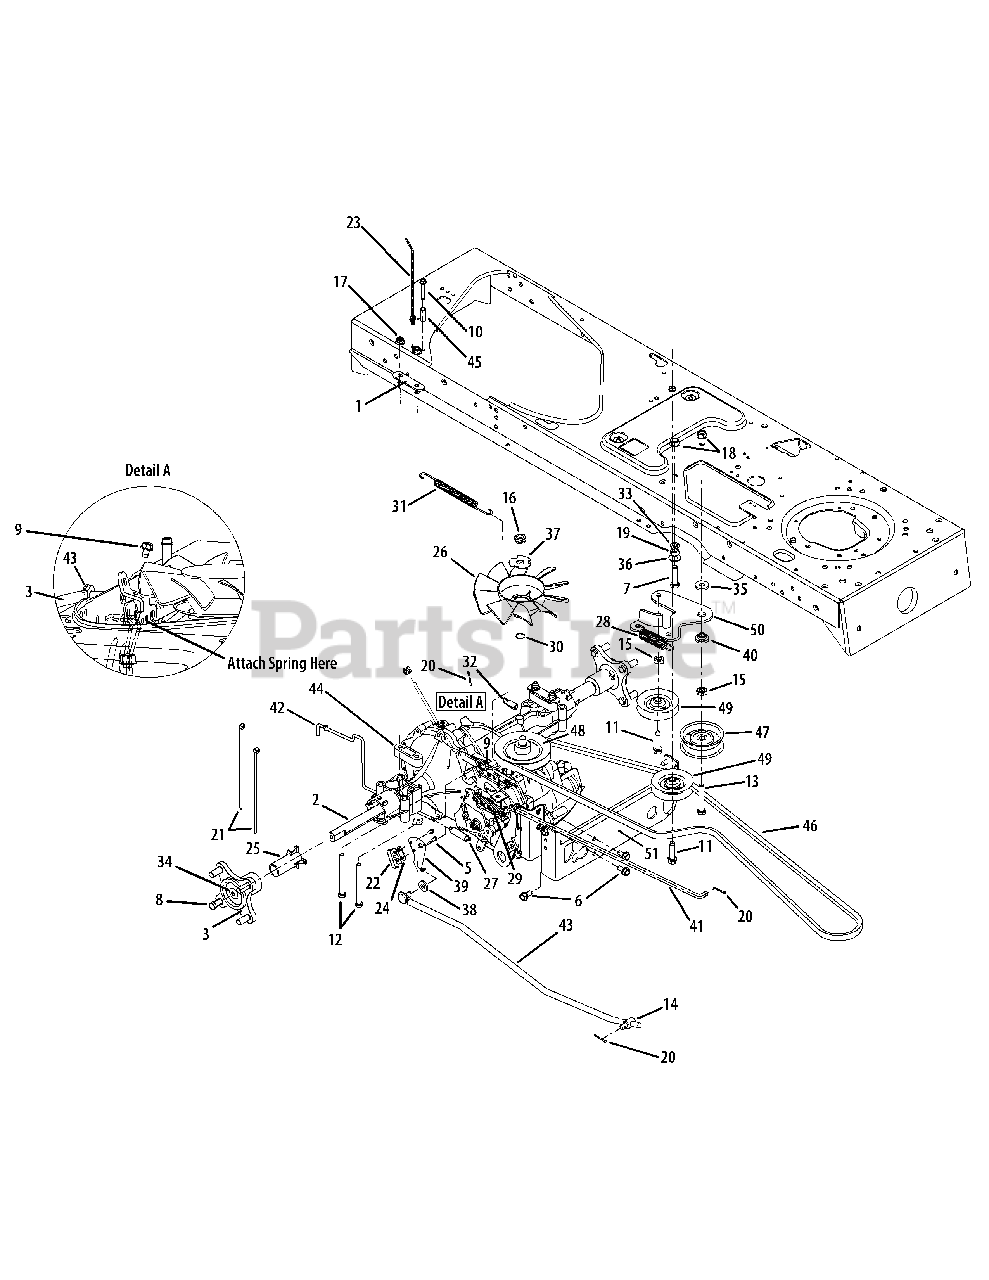 Cub Cadet Parts On The Drive System Diagram For Slt 1550